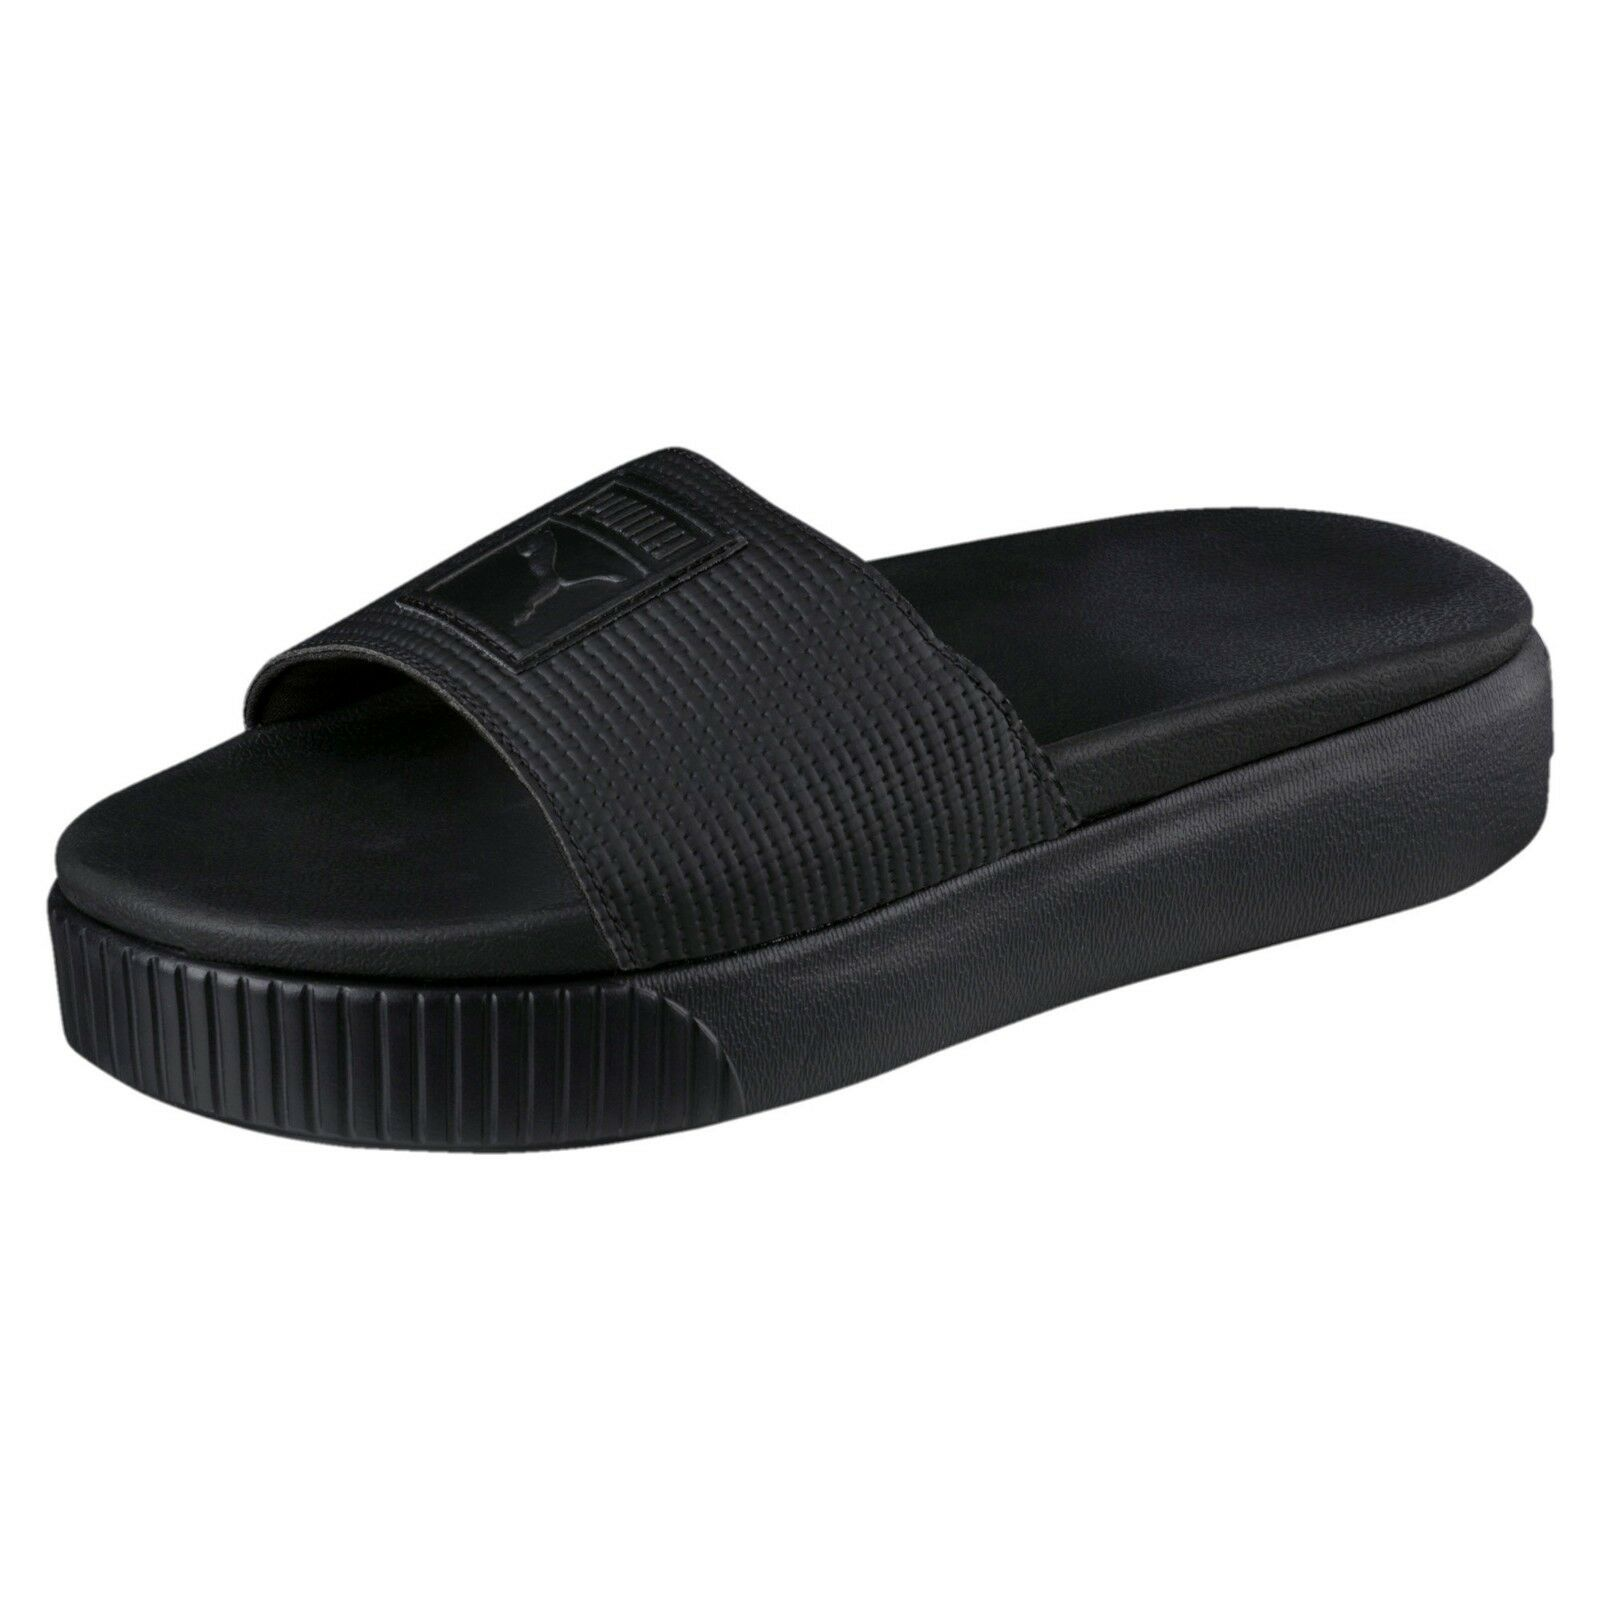 Puma femmes SANDALS - PLATFORM SLIDE EP - WITH LOGO ON STRAP - noir